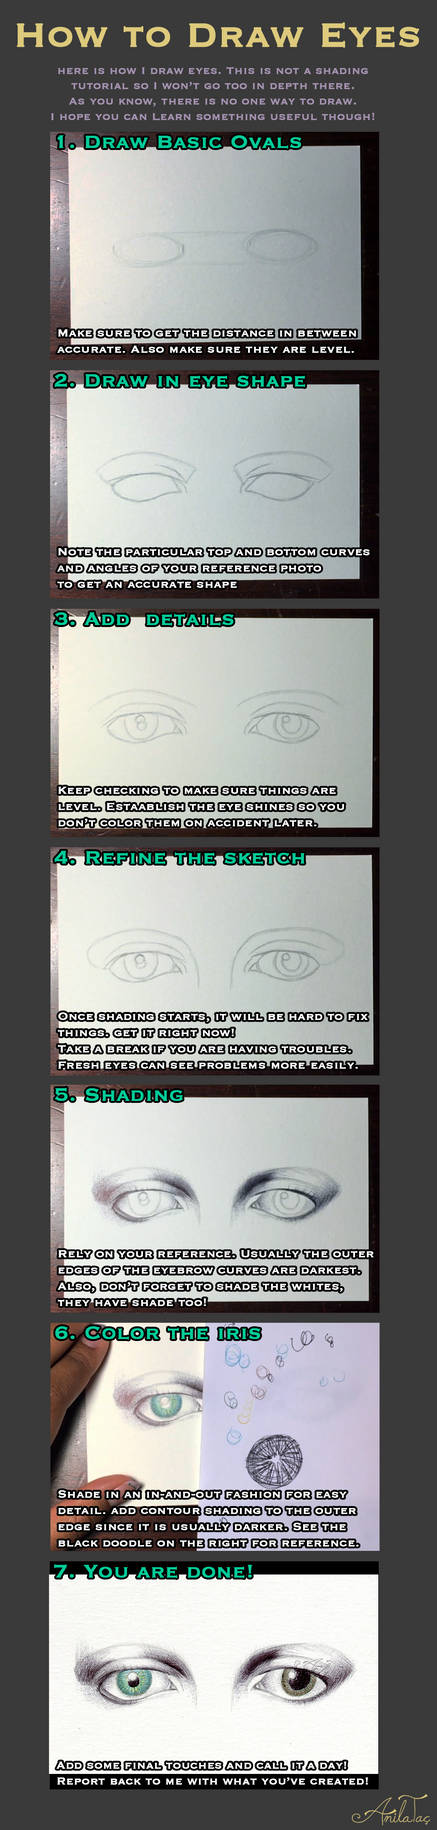 How To Draw Eyes ft David Bowie